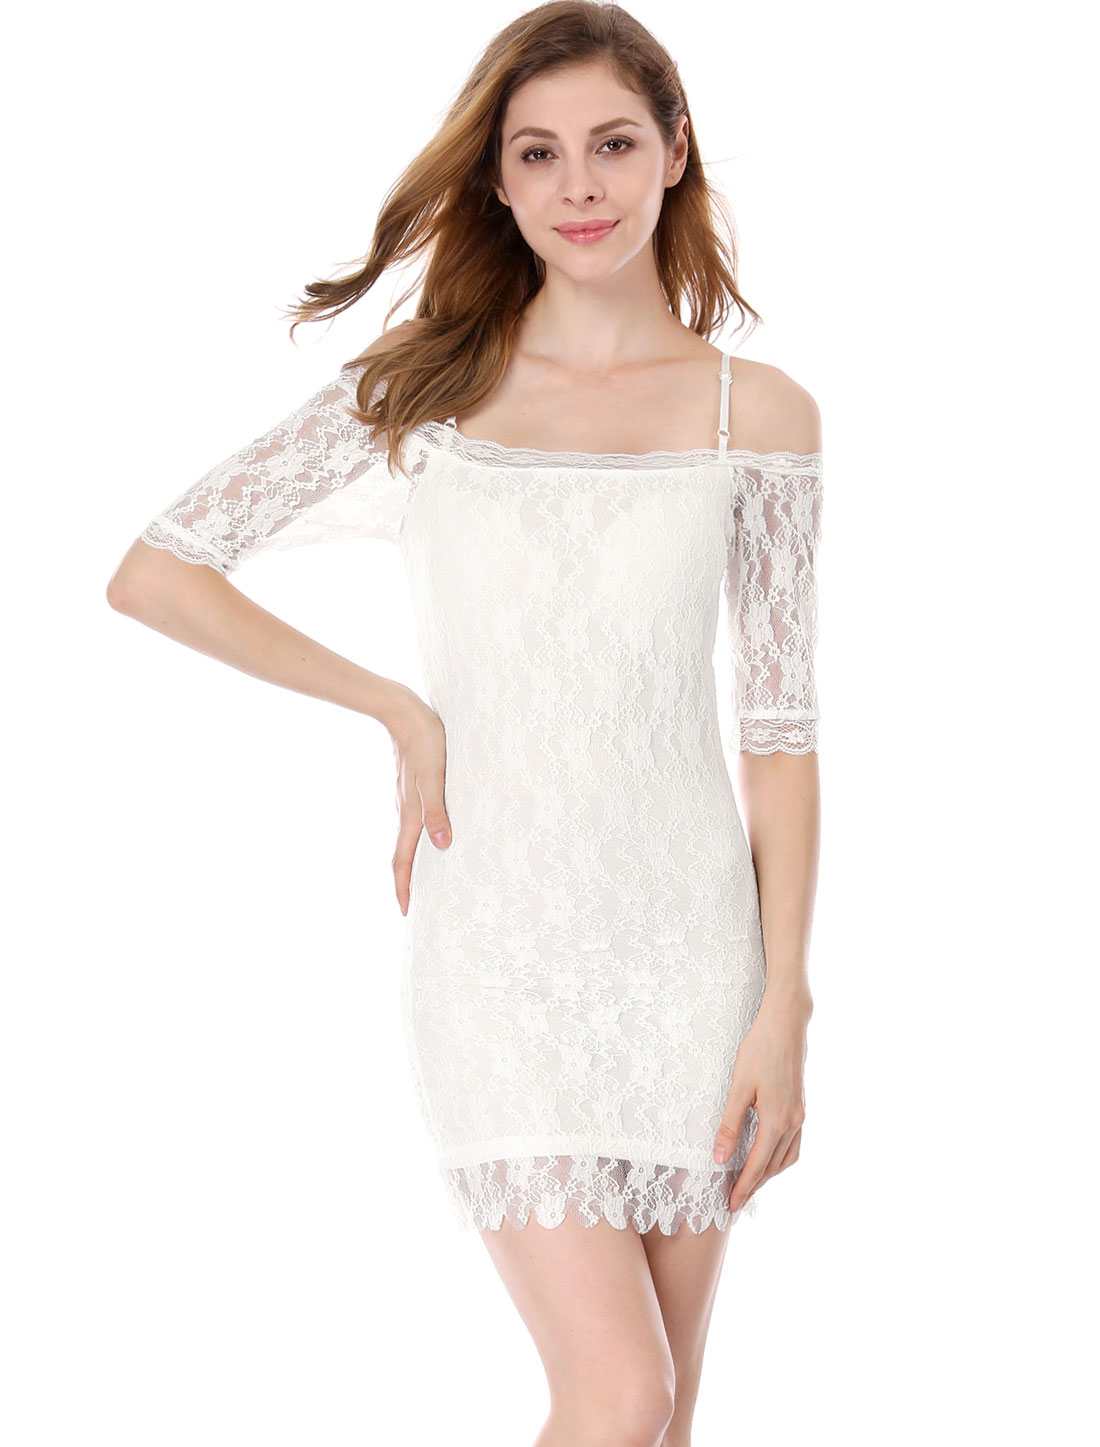 Lady All Over Lace Covered Lined White Slim Fit Mini Dress S